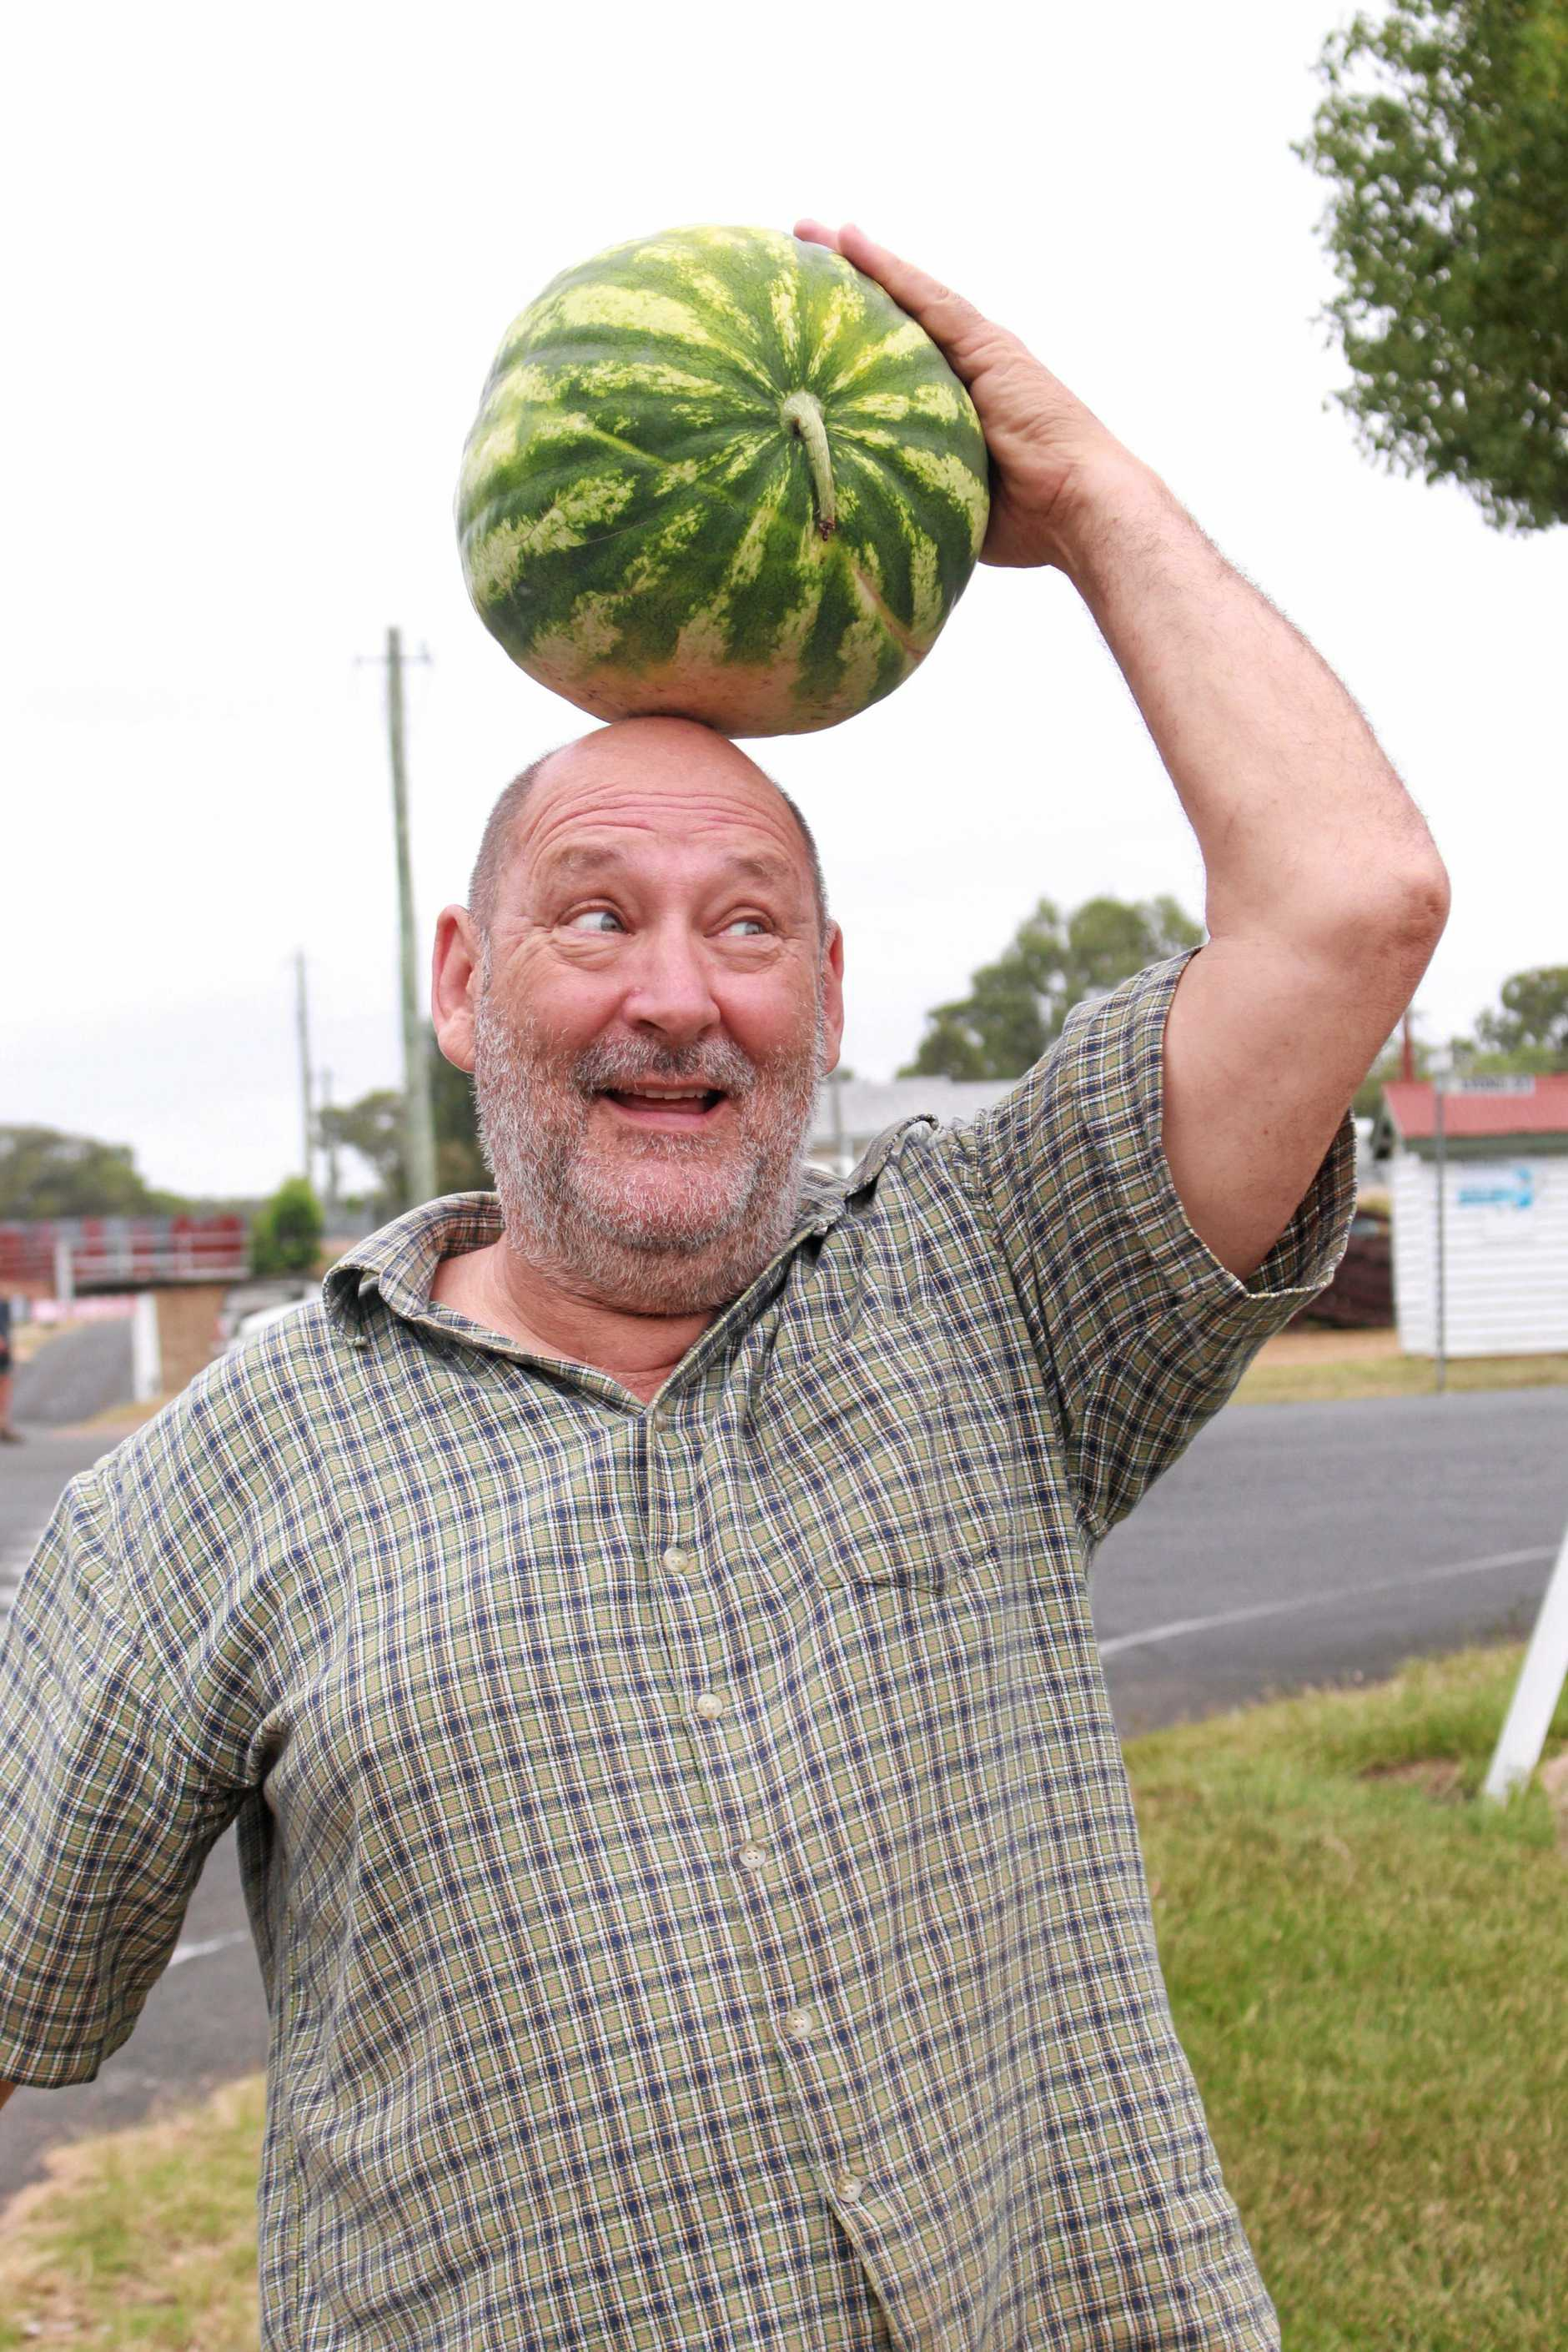 Allora hobby farmer Steve Harrop was looking forward to the first Pig and Calf sale of 2019. He wasn't disappointed when he walked away with a big watermelon, perfect for summer.